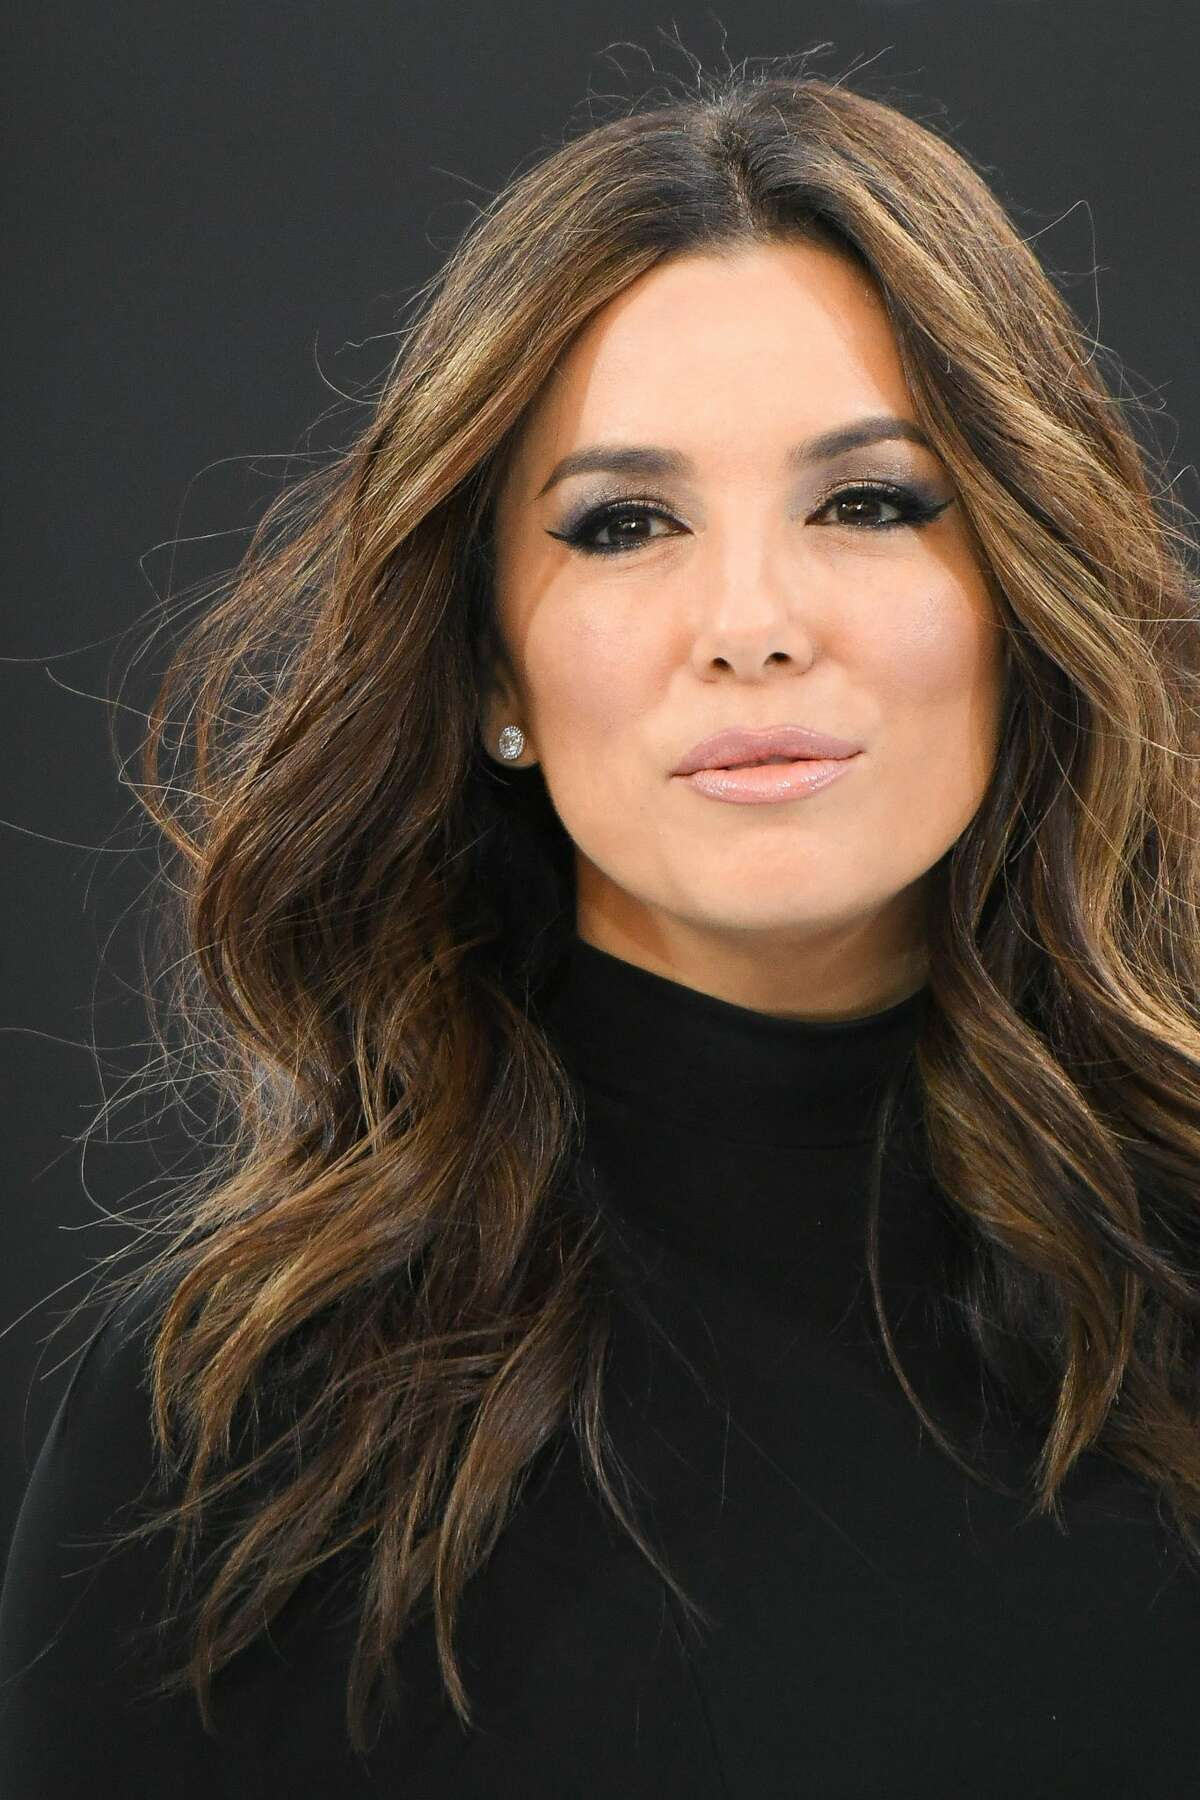 Although it may not look like it, Eva has been seen sporting gray hairs, which she is quick to promote the Loreal products she is a spokesperson for to cover them up.